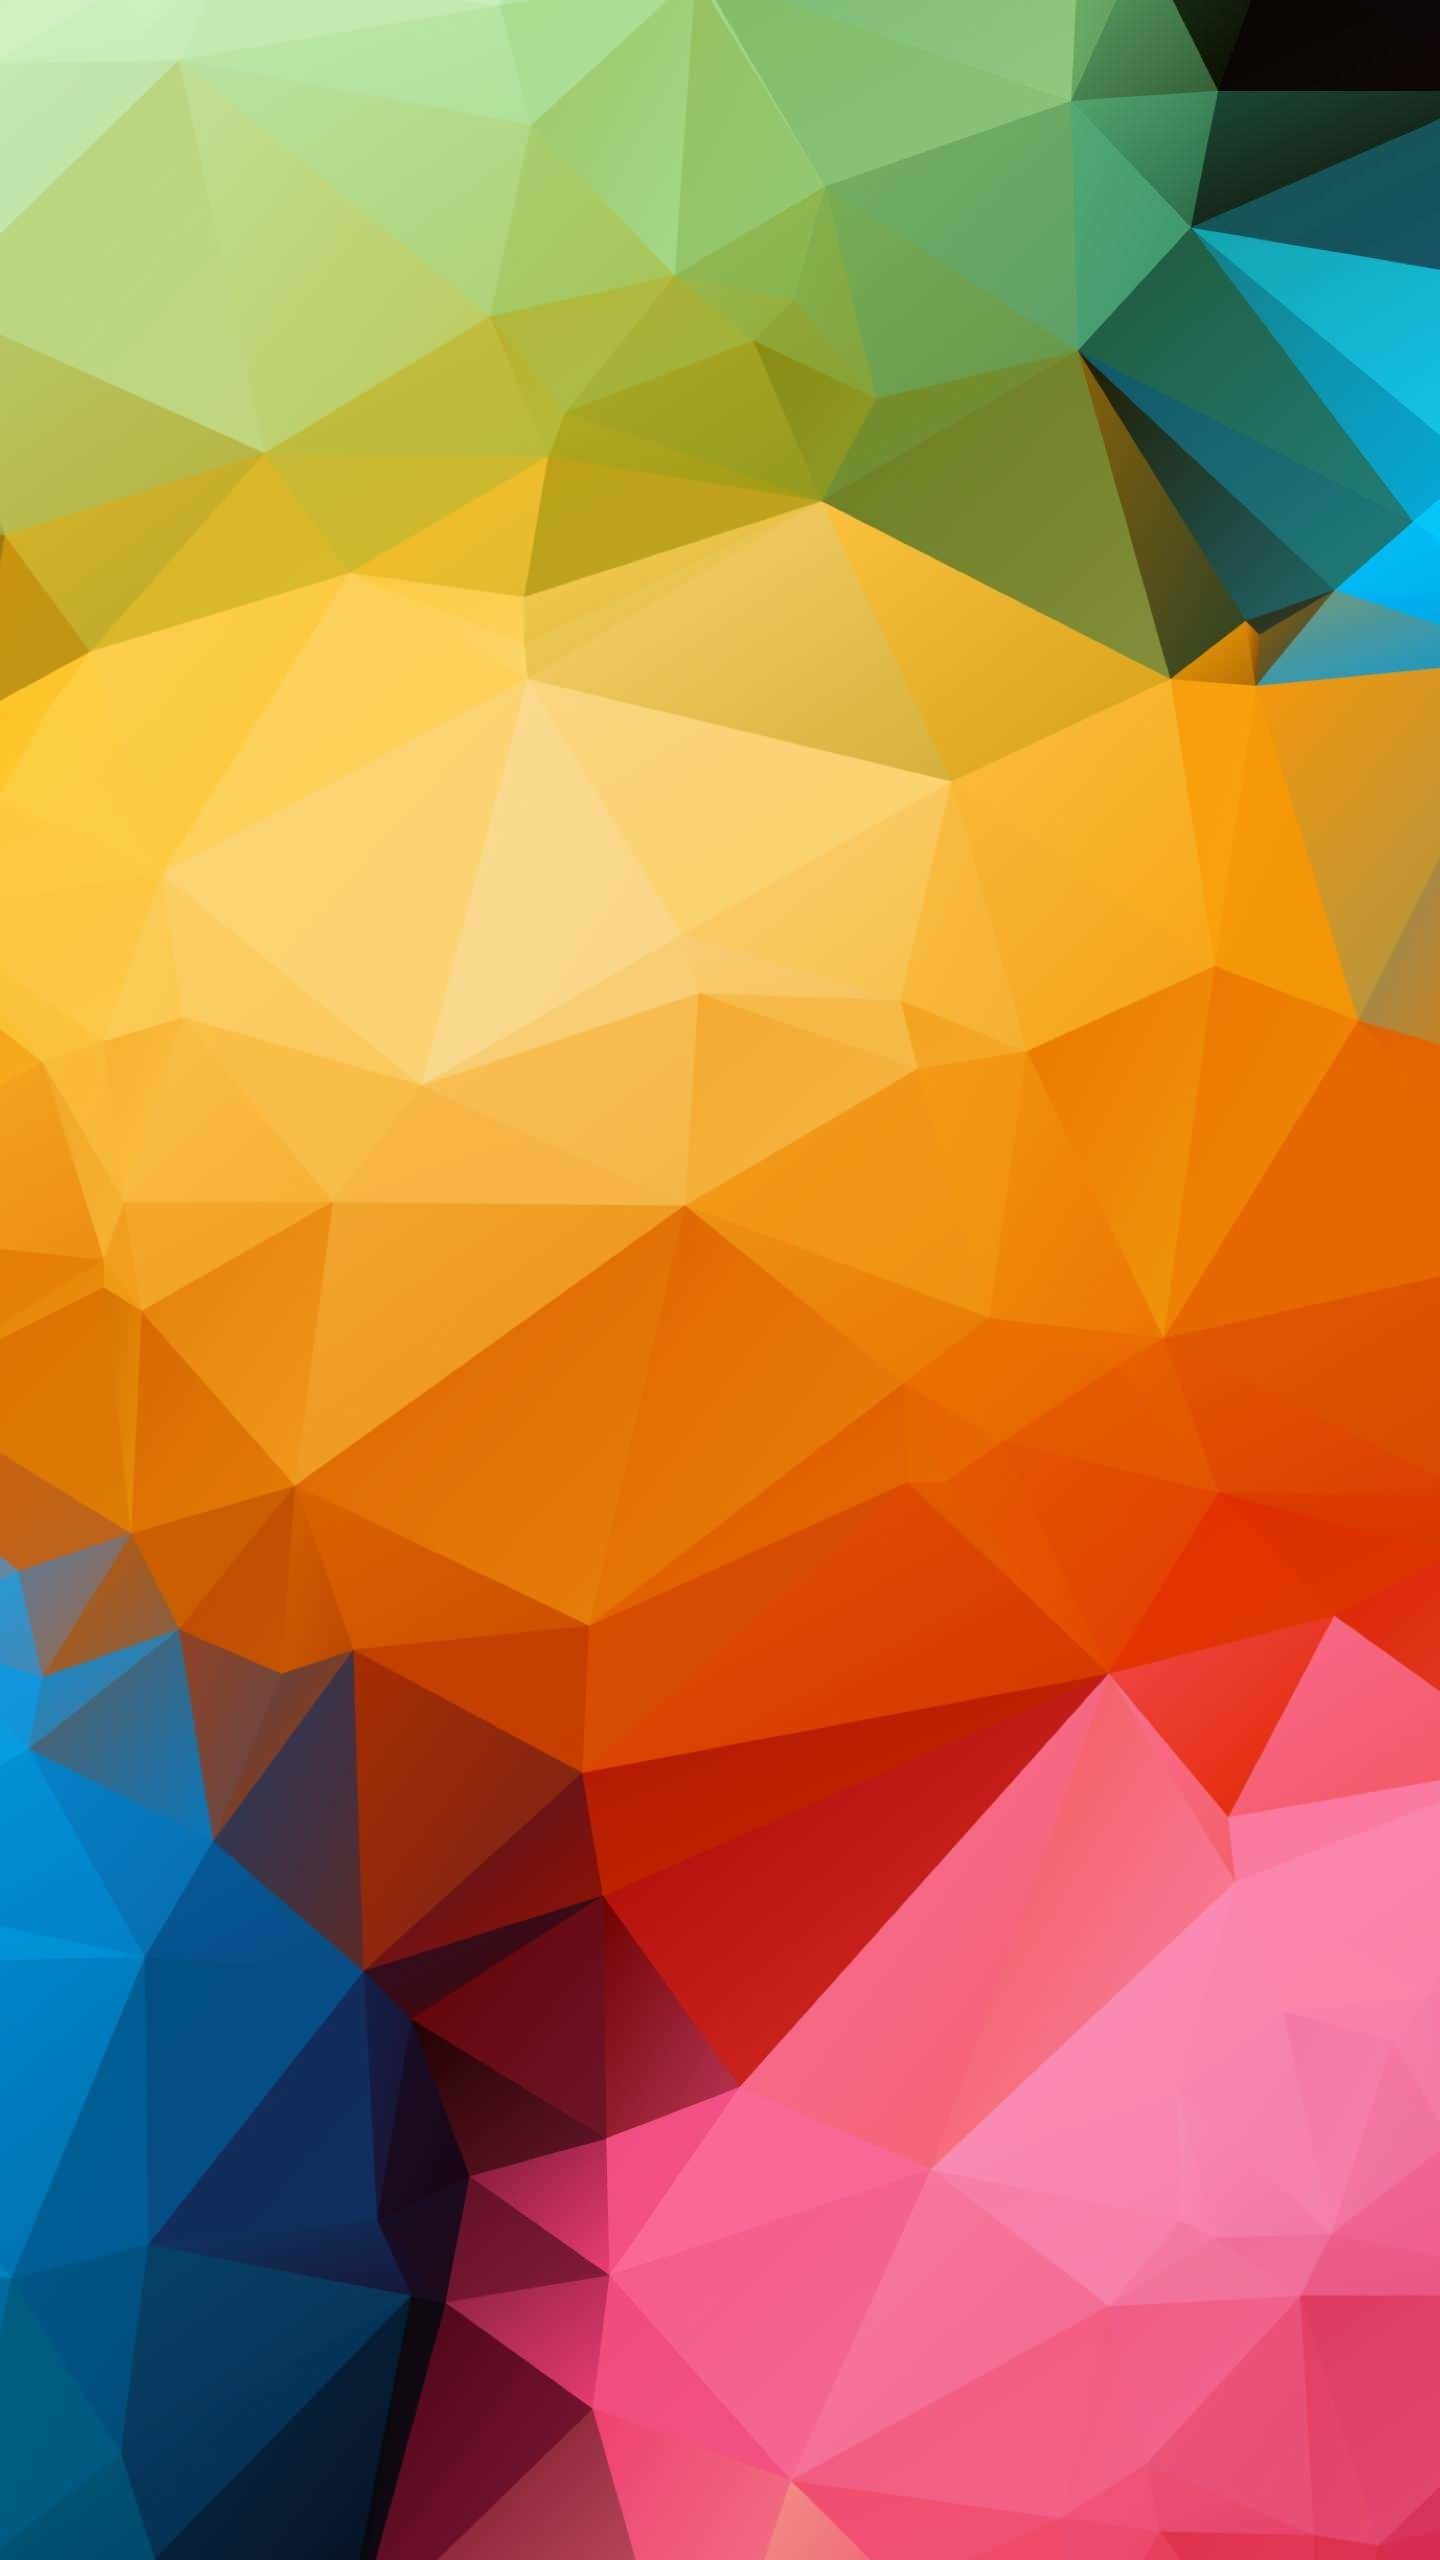 20 colorful wallpapers for your Quad HD smartphone